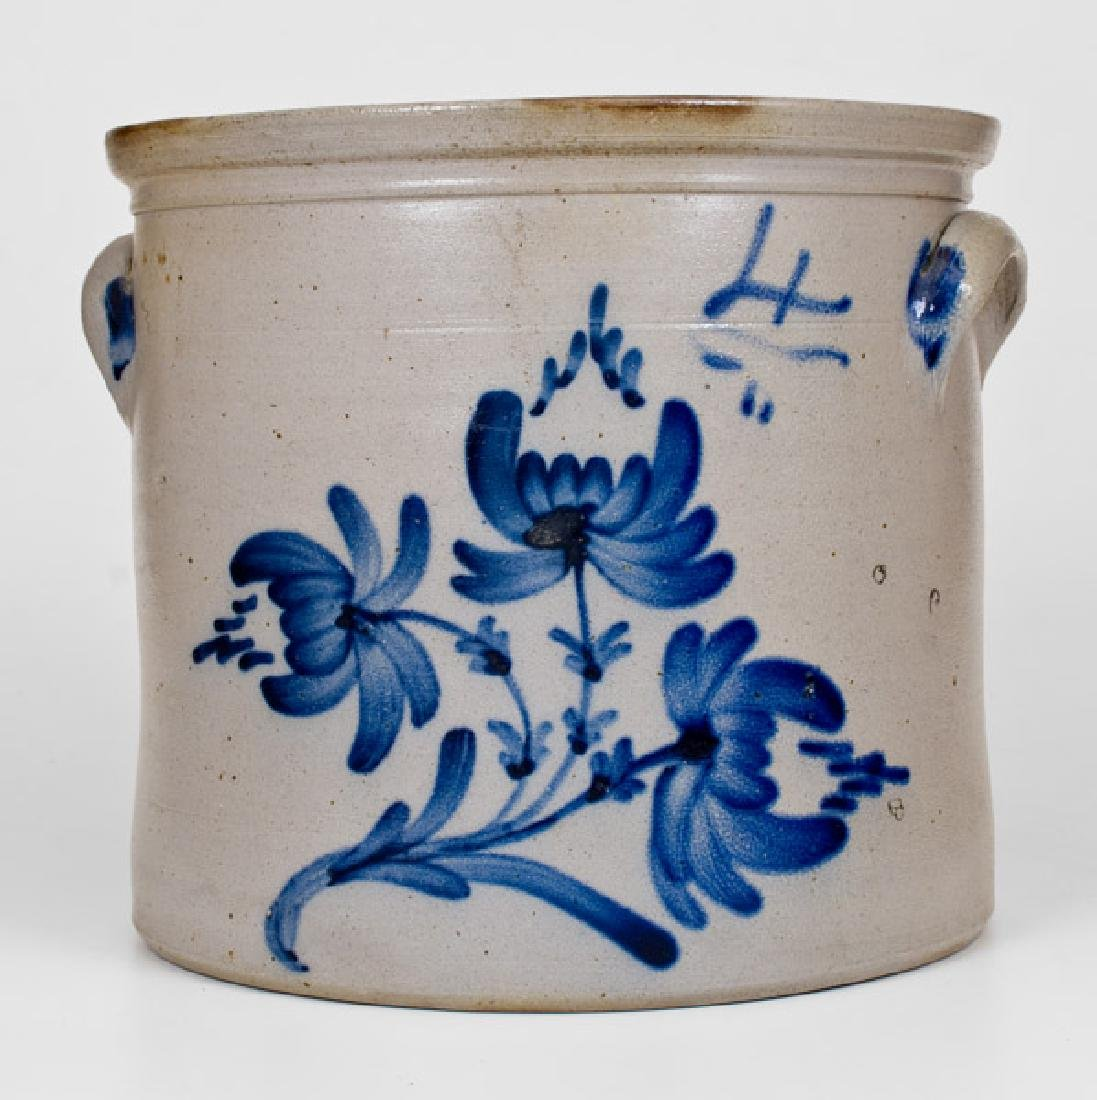 Four-Gallon New York State Stoneware Crock with Cobalt